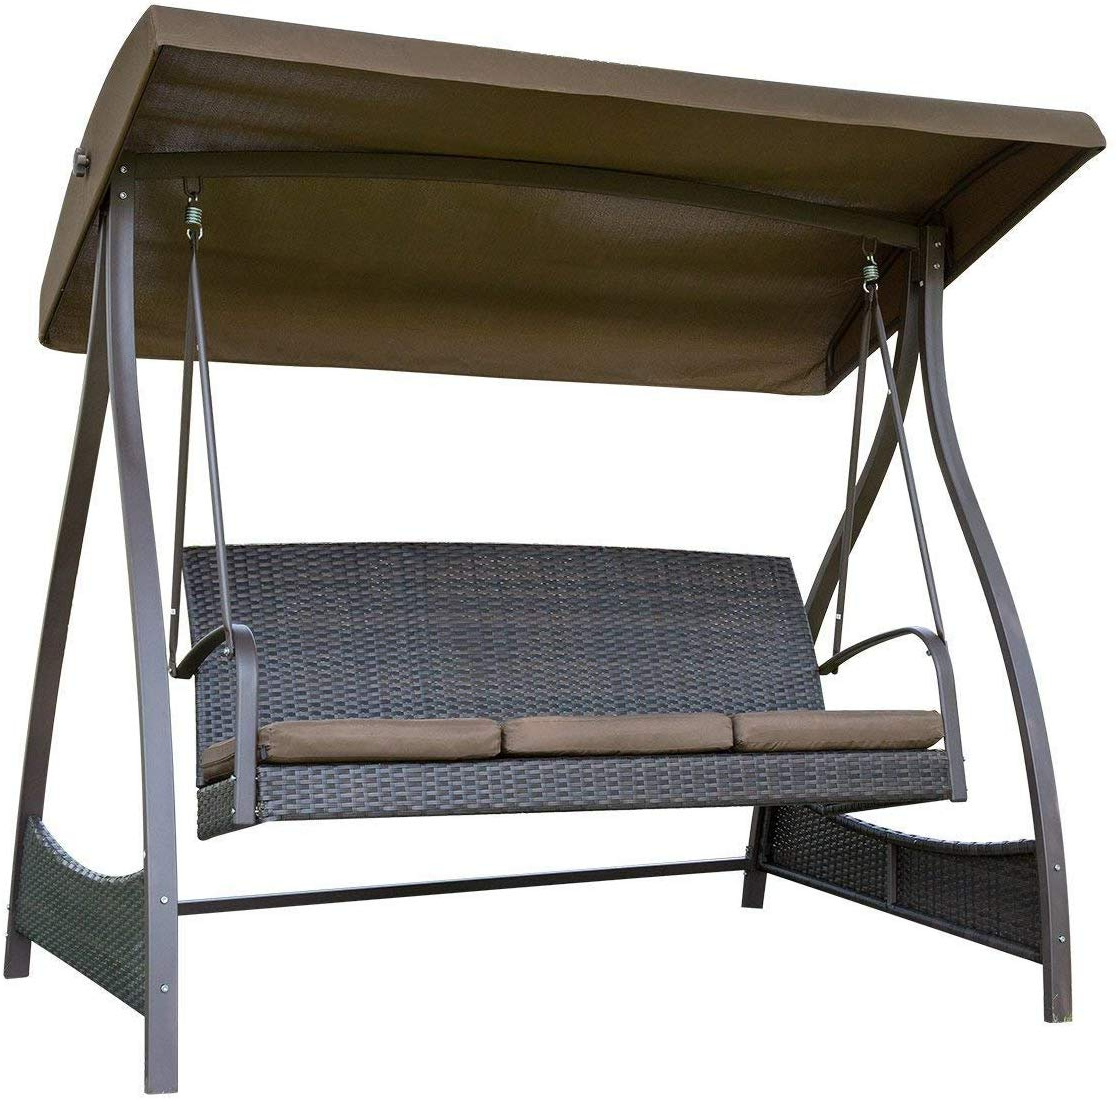 Amazon : Sunlife Porch Swing 3 Seat Lawn Glider Hammock Intended For Most Recent Outdoor Swing Glider Chairs With Powder Coated Steel Frame (View 14 of 30)